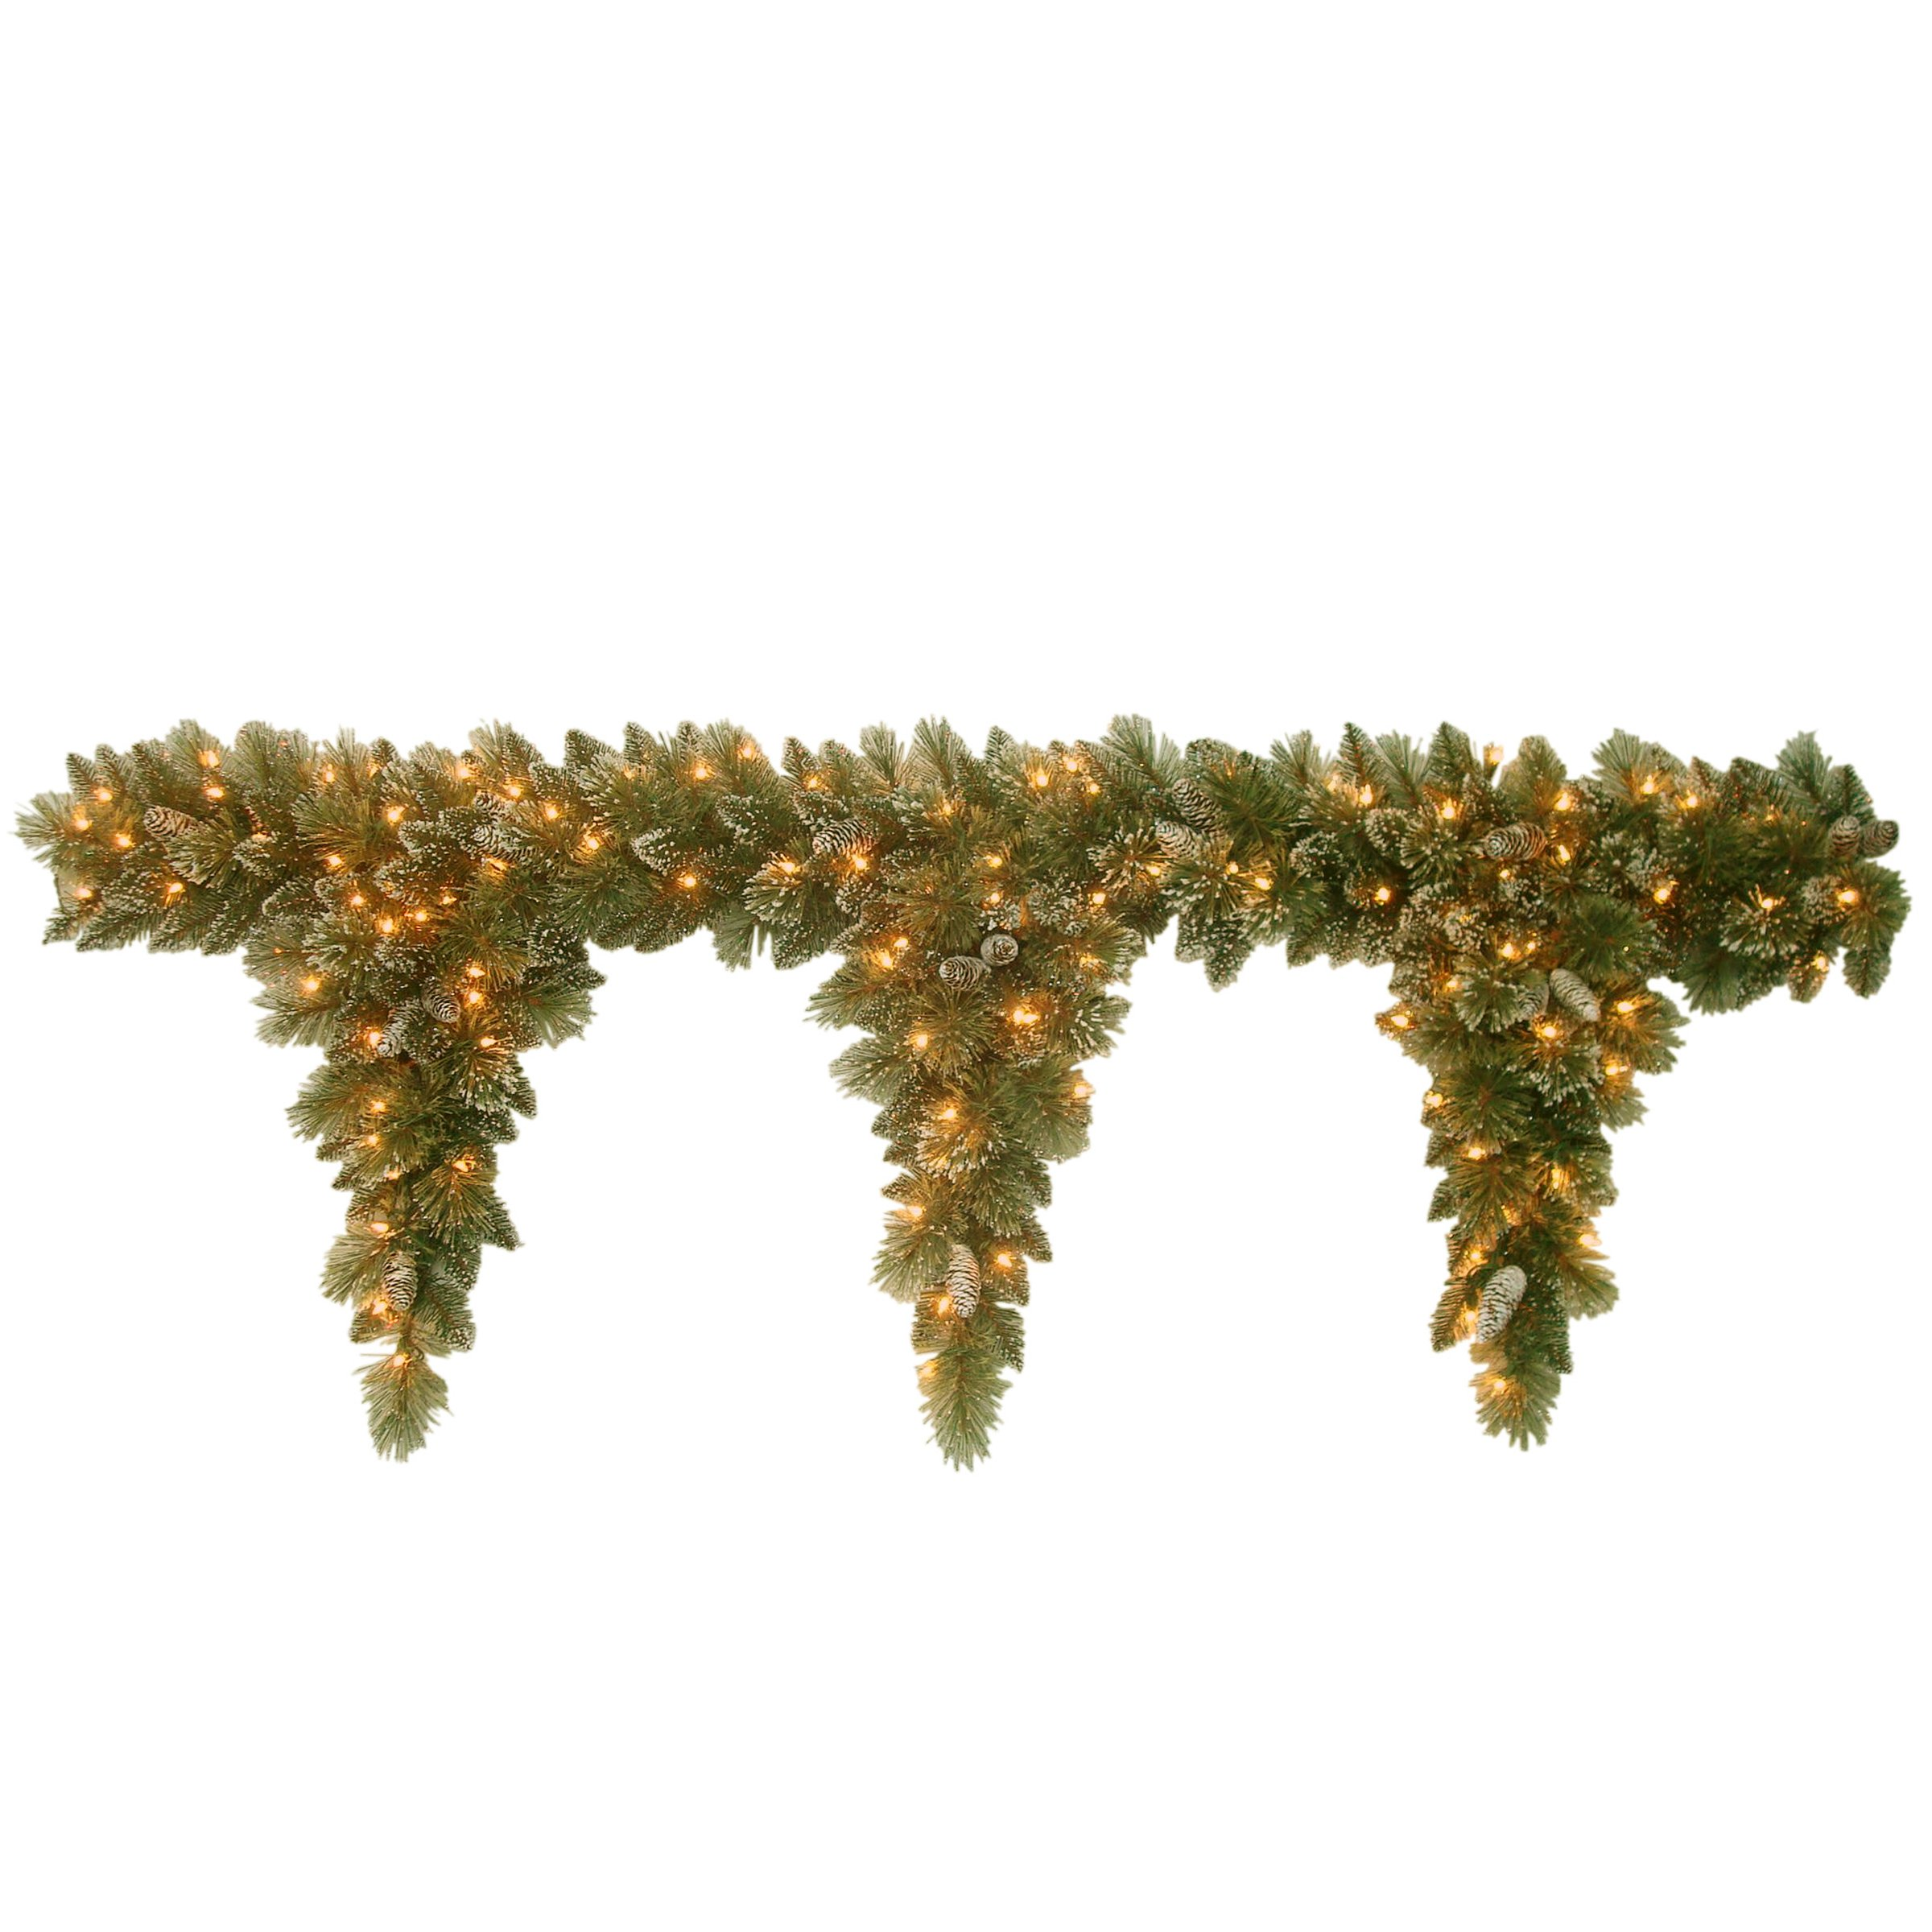 National Tree 6 Foot Glittery Bristle Pine Teardrop Garland with 3 Drops, Cones and 50 Clear Lights (GB1-300-6T-1)